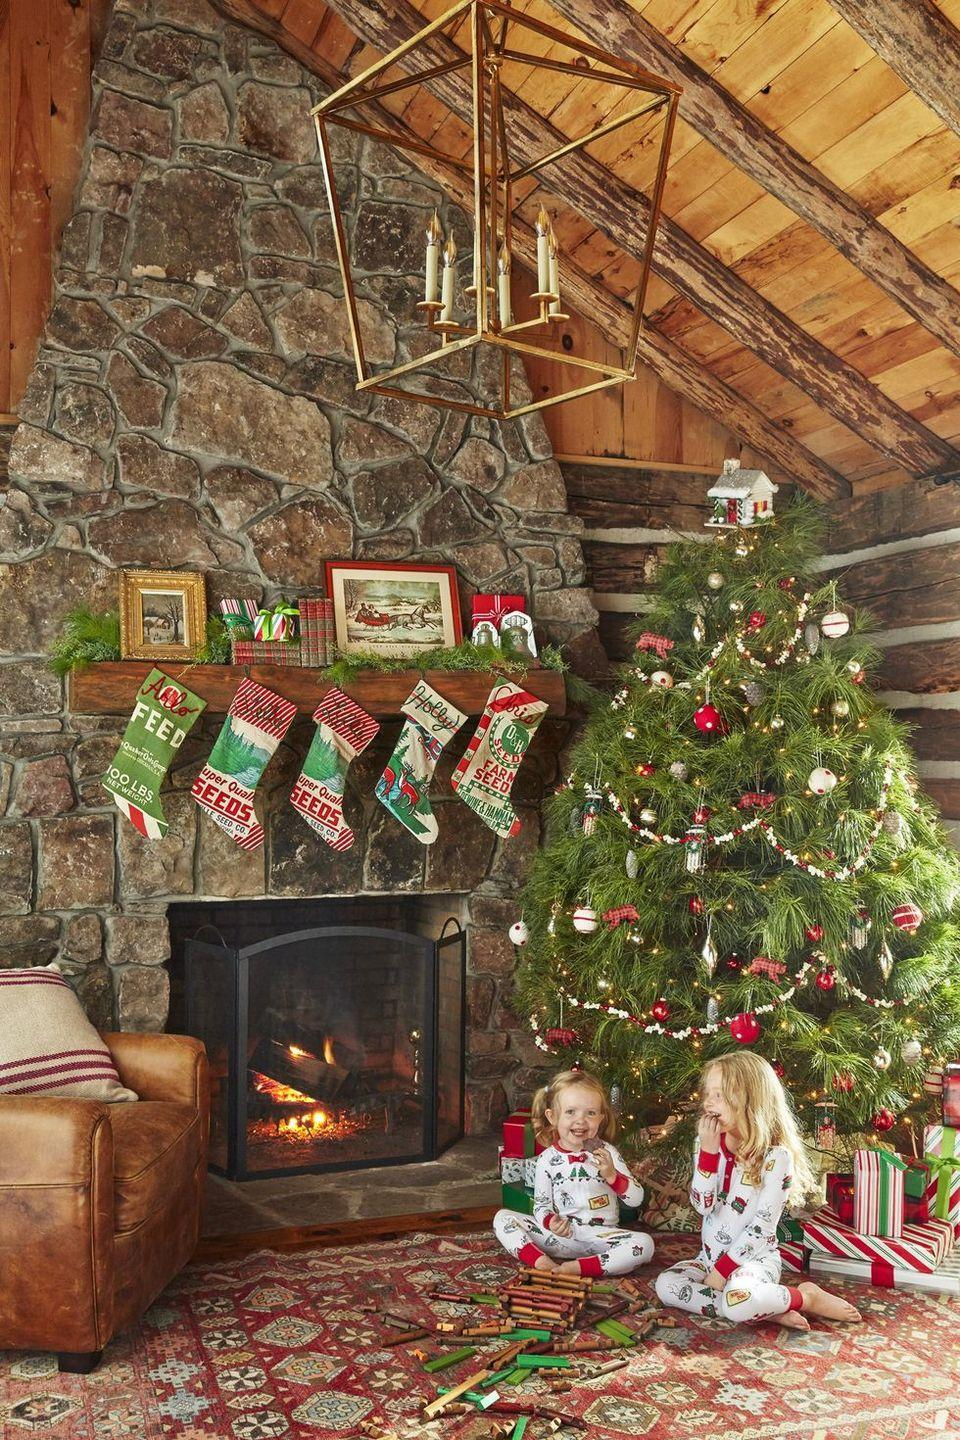 """<p>Why <a href=""""https://www.countryliving.com/home-design/decorating-ideas/tips/g1251/trim-christmas-trees-1208/"""" rel=""""nofollow noopener"""" target=""""_blank"""" data-ylk=""""slk:decorate your tree"""" class=""""link rapid-noclick-resp"""">decorate your tree</a> alone? Invite friends from near and far to join you in the fun. Set out popcorn, cranberries, and thread for an old-fashioned look, or simply let your guests take turns adding ornaments to the branches. You can also ask that they bring one to share—that way, the party's personal too!</p><p><a class=""""link rapid-noclick-resp"""" href=""""https://go.redirectingat.com?id=74968X1596630&url=https%3A%2F%2Fwww.etsy.com%2Flisting%2F906663954%2Fgingerbread-house-personalized-christmas&sref=https%3A%2F%2Fwww.countryliving.com%2Fdiy-crafts%2Fhow-to%2Fg2218%2Fchristmas-party-ideas%2F"""" rel=""""nofollow noopener"""" target=""""_blank"""" data-ylk=""""slk:SHOP GINGERBREAD TREE ORNAMENTS"""">SHOP GINGERBREAD TREE ORNAMENTS</a></p>"""